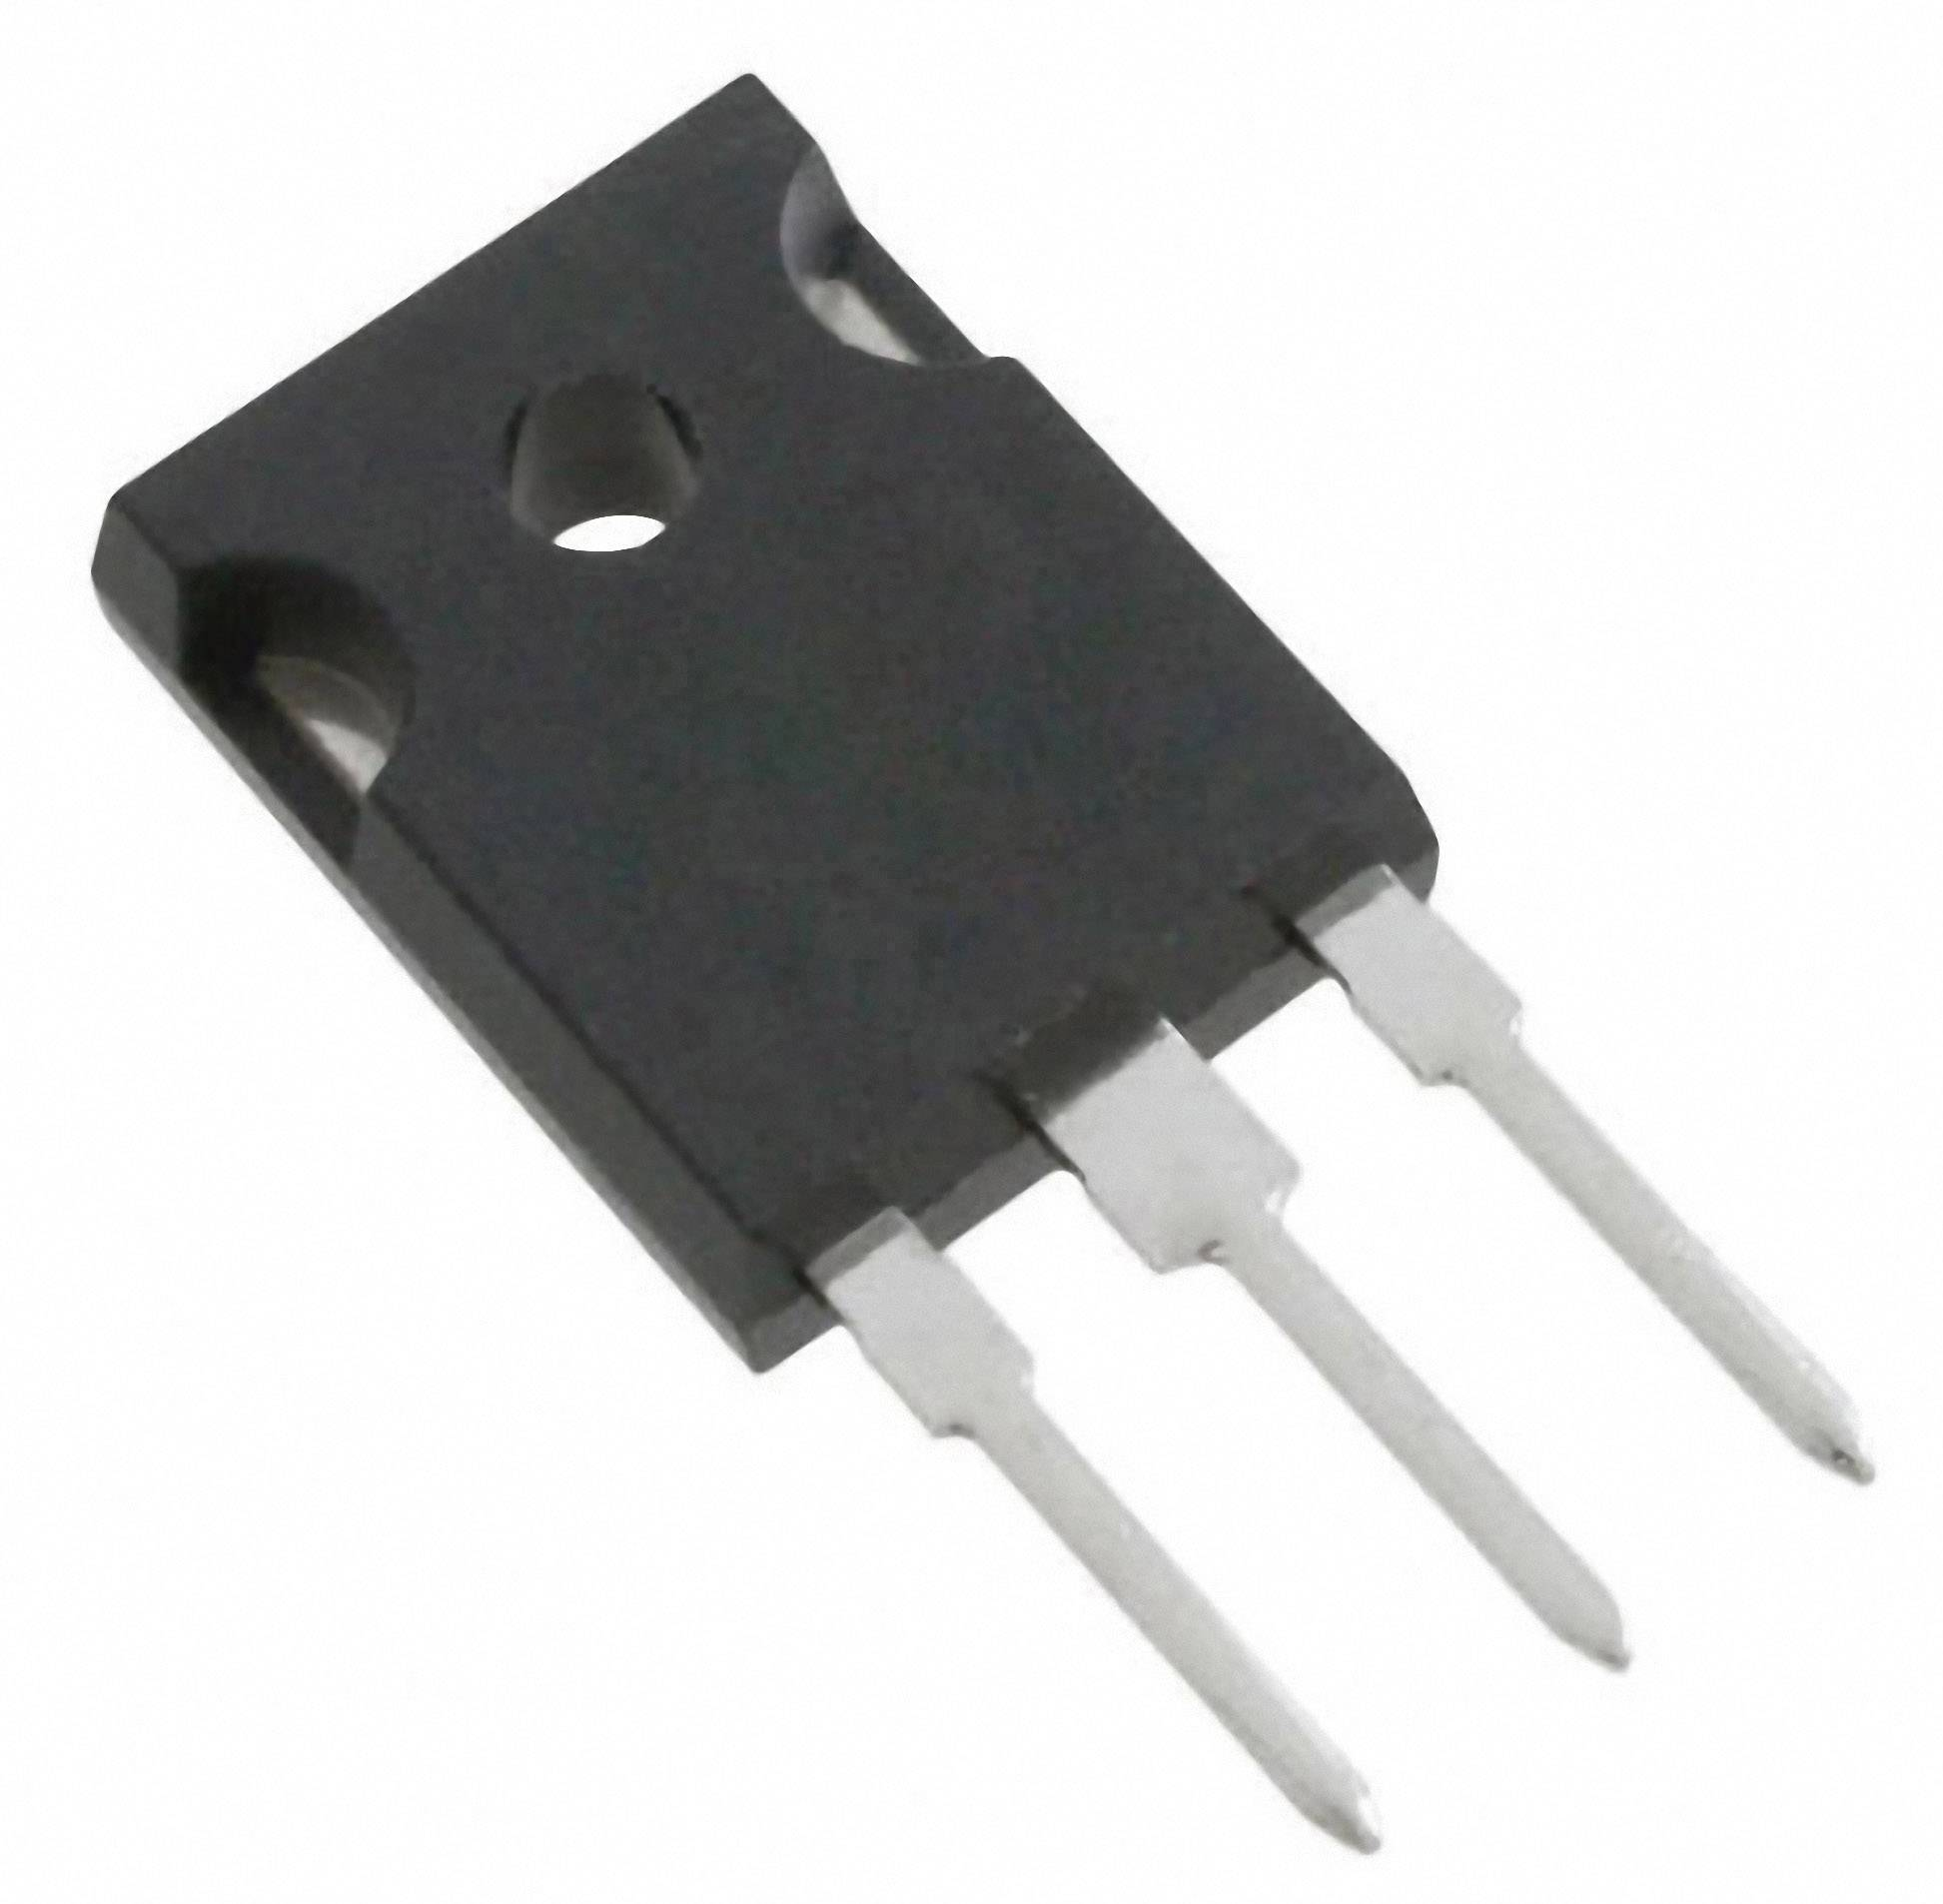 Tranzistor IGBT ON Semiconductor HGTG20N60A4D, TO-247 , 600 V, samostatný, standardní